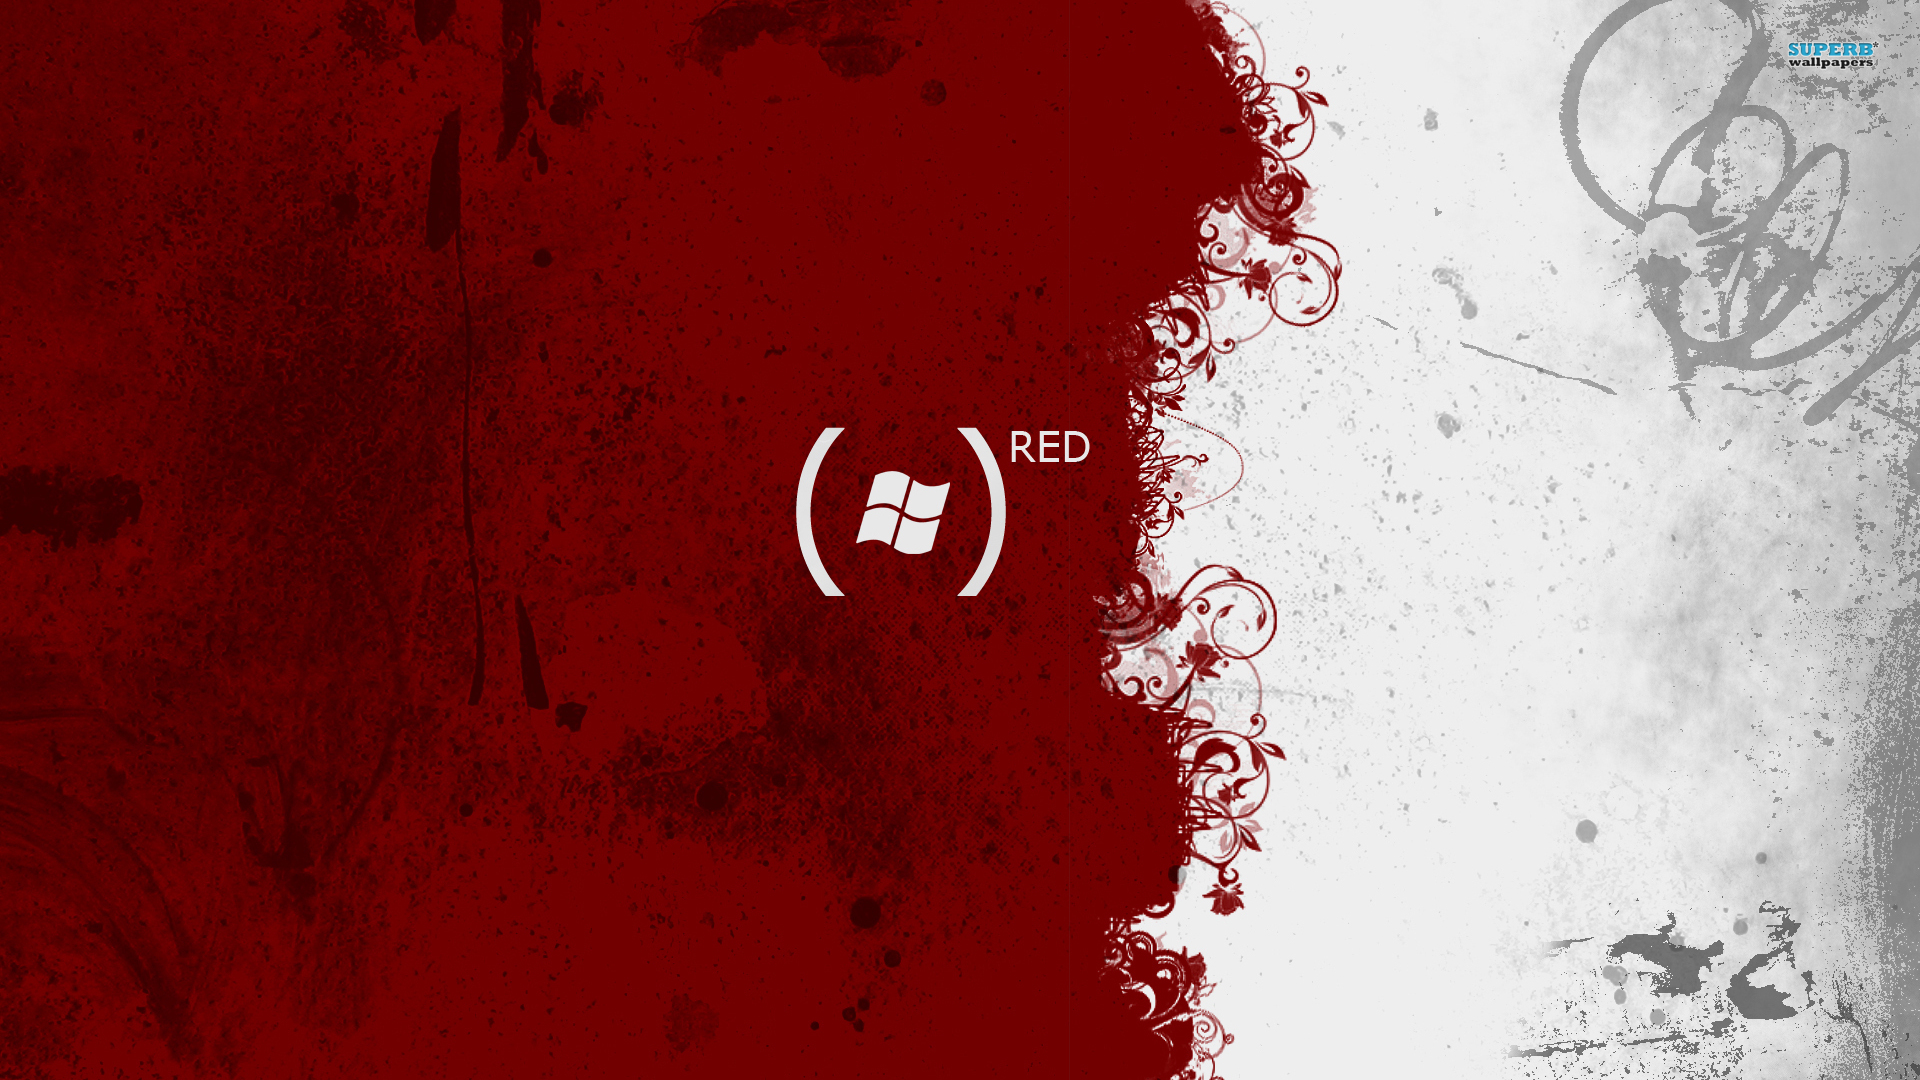 20779 download wallpaper Brands, Background, Logos, Windows, Microsoft screensavers and pictures for free